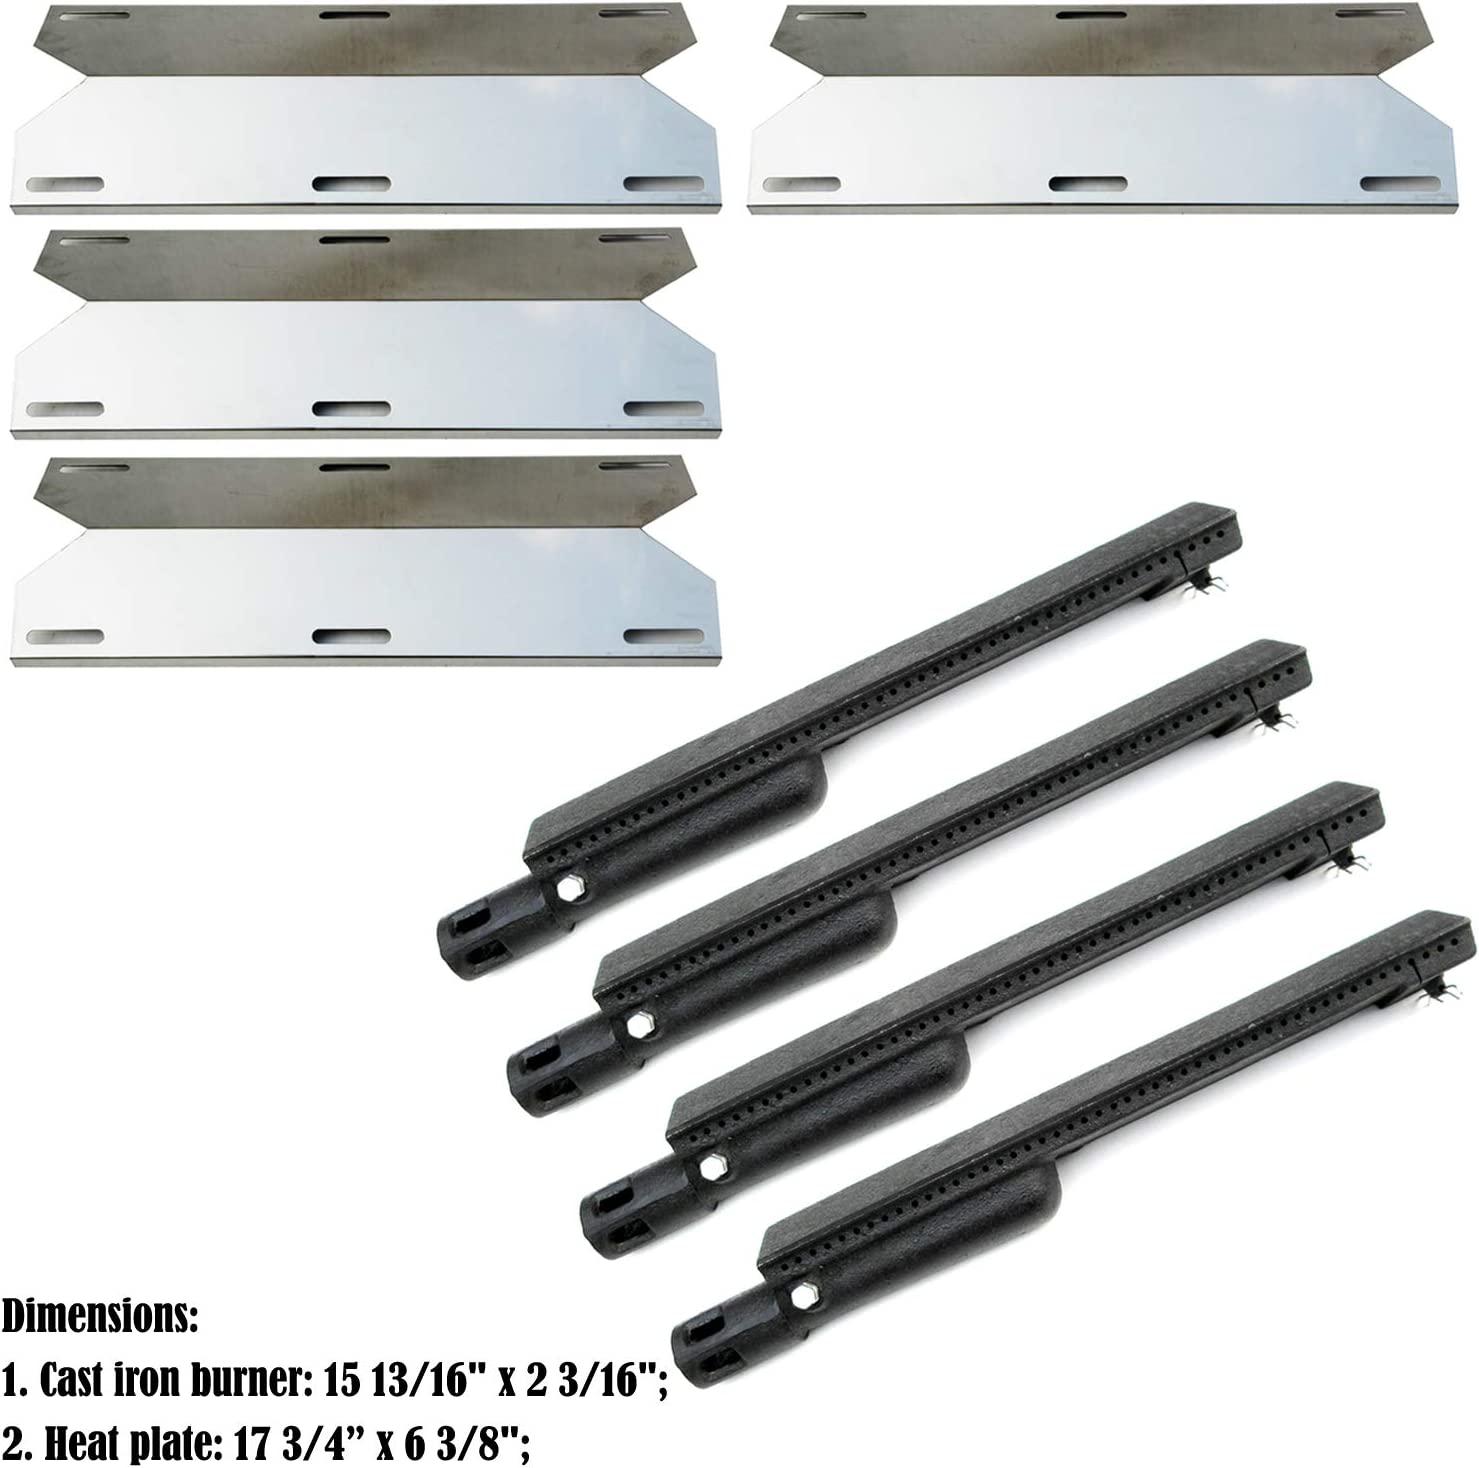 Direct Store Parts Kit DG224 Replacement for Jenn Air Gas Grill Repair Kit Gas Grill Burner and Heat Plate- 4 Pack (Cast Iron Burner + Stainless Steel Heat Plates) : Garden & Outdoor